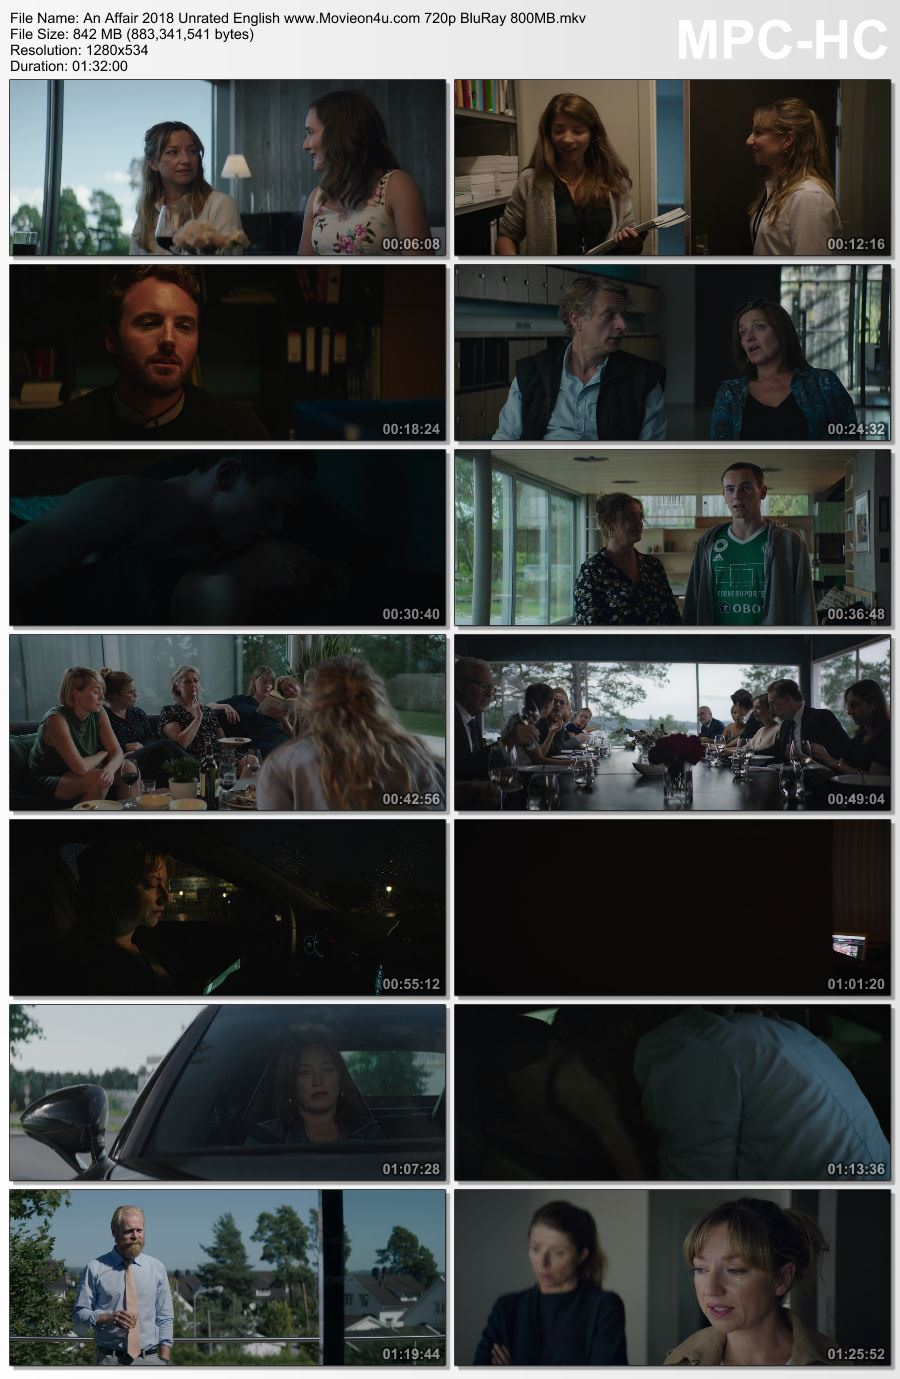 An Affair 2018 Unrated English 720p BluRay x264 800MB Download HD